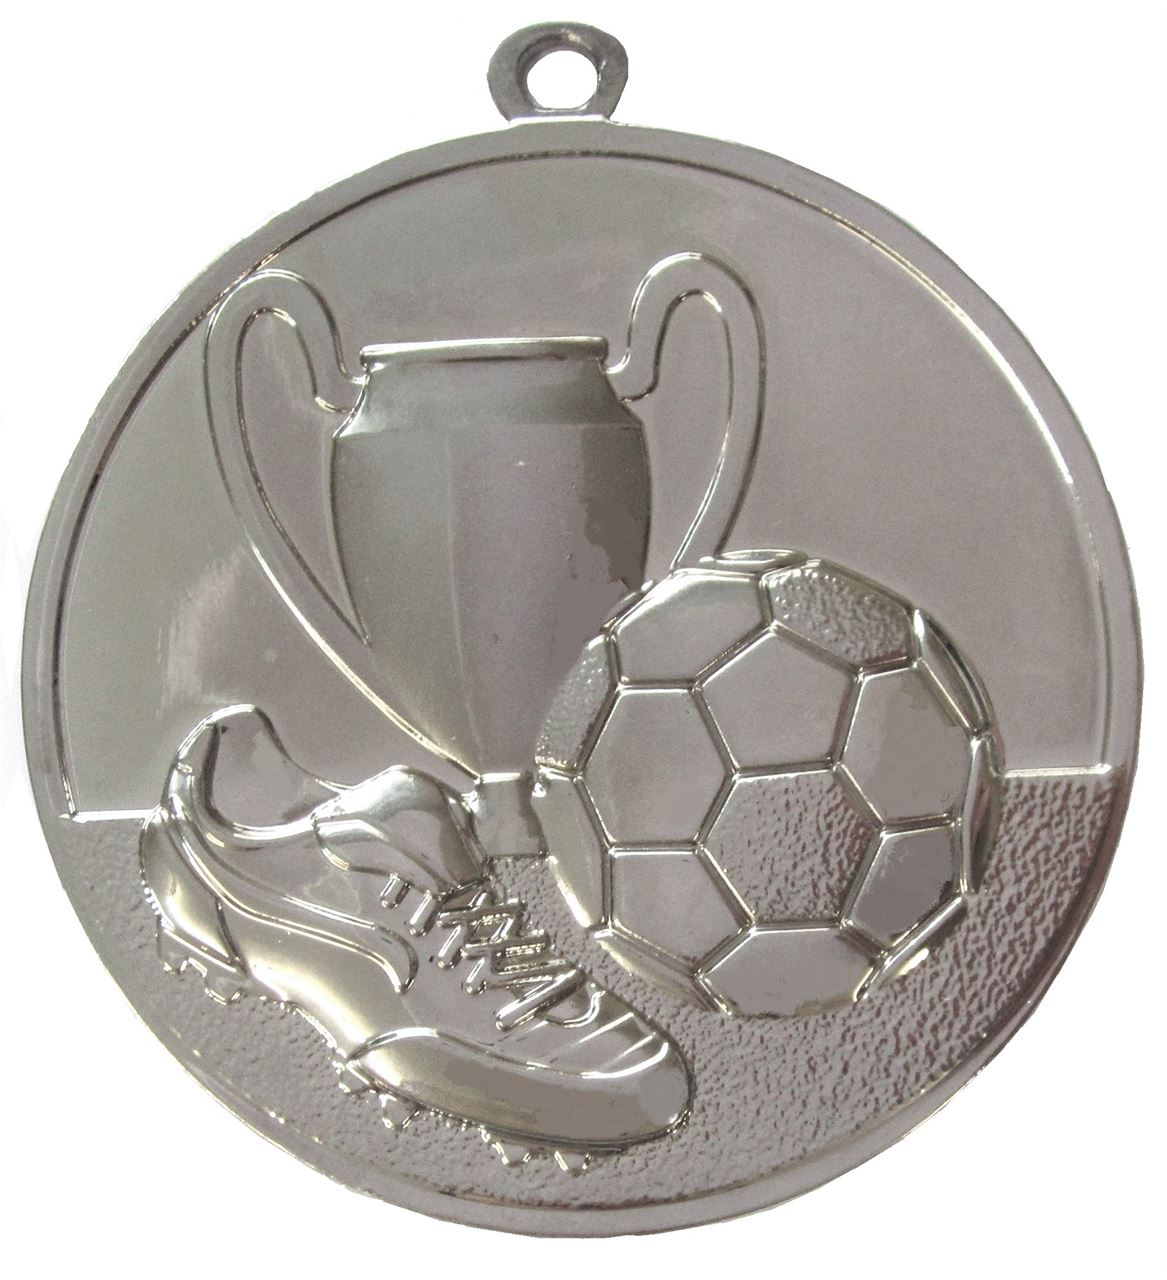 Silver Super Economy Football Medal (size: 50mm) - ME47